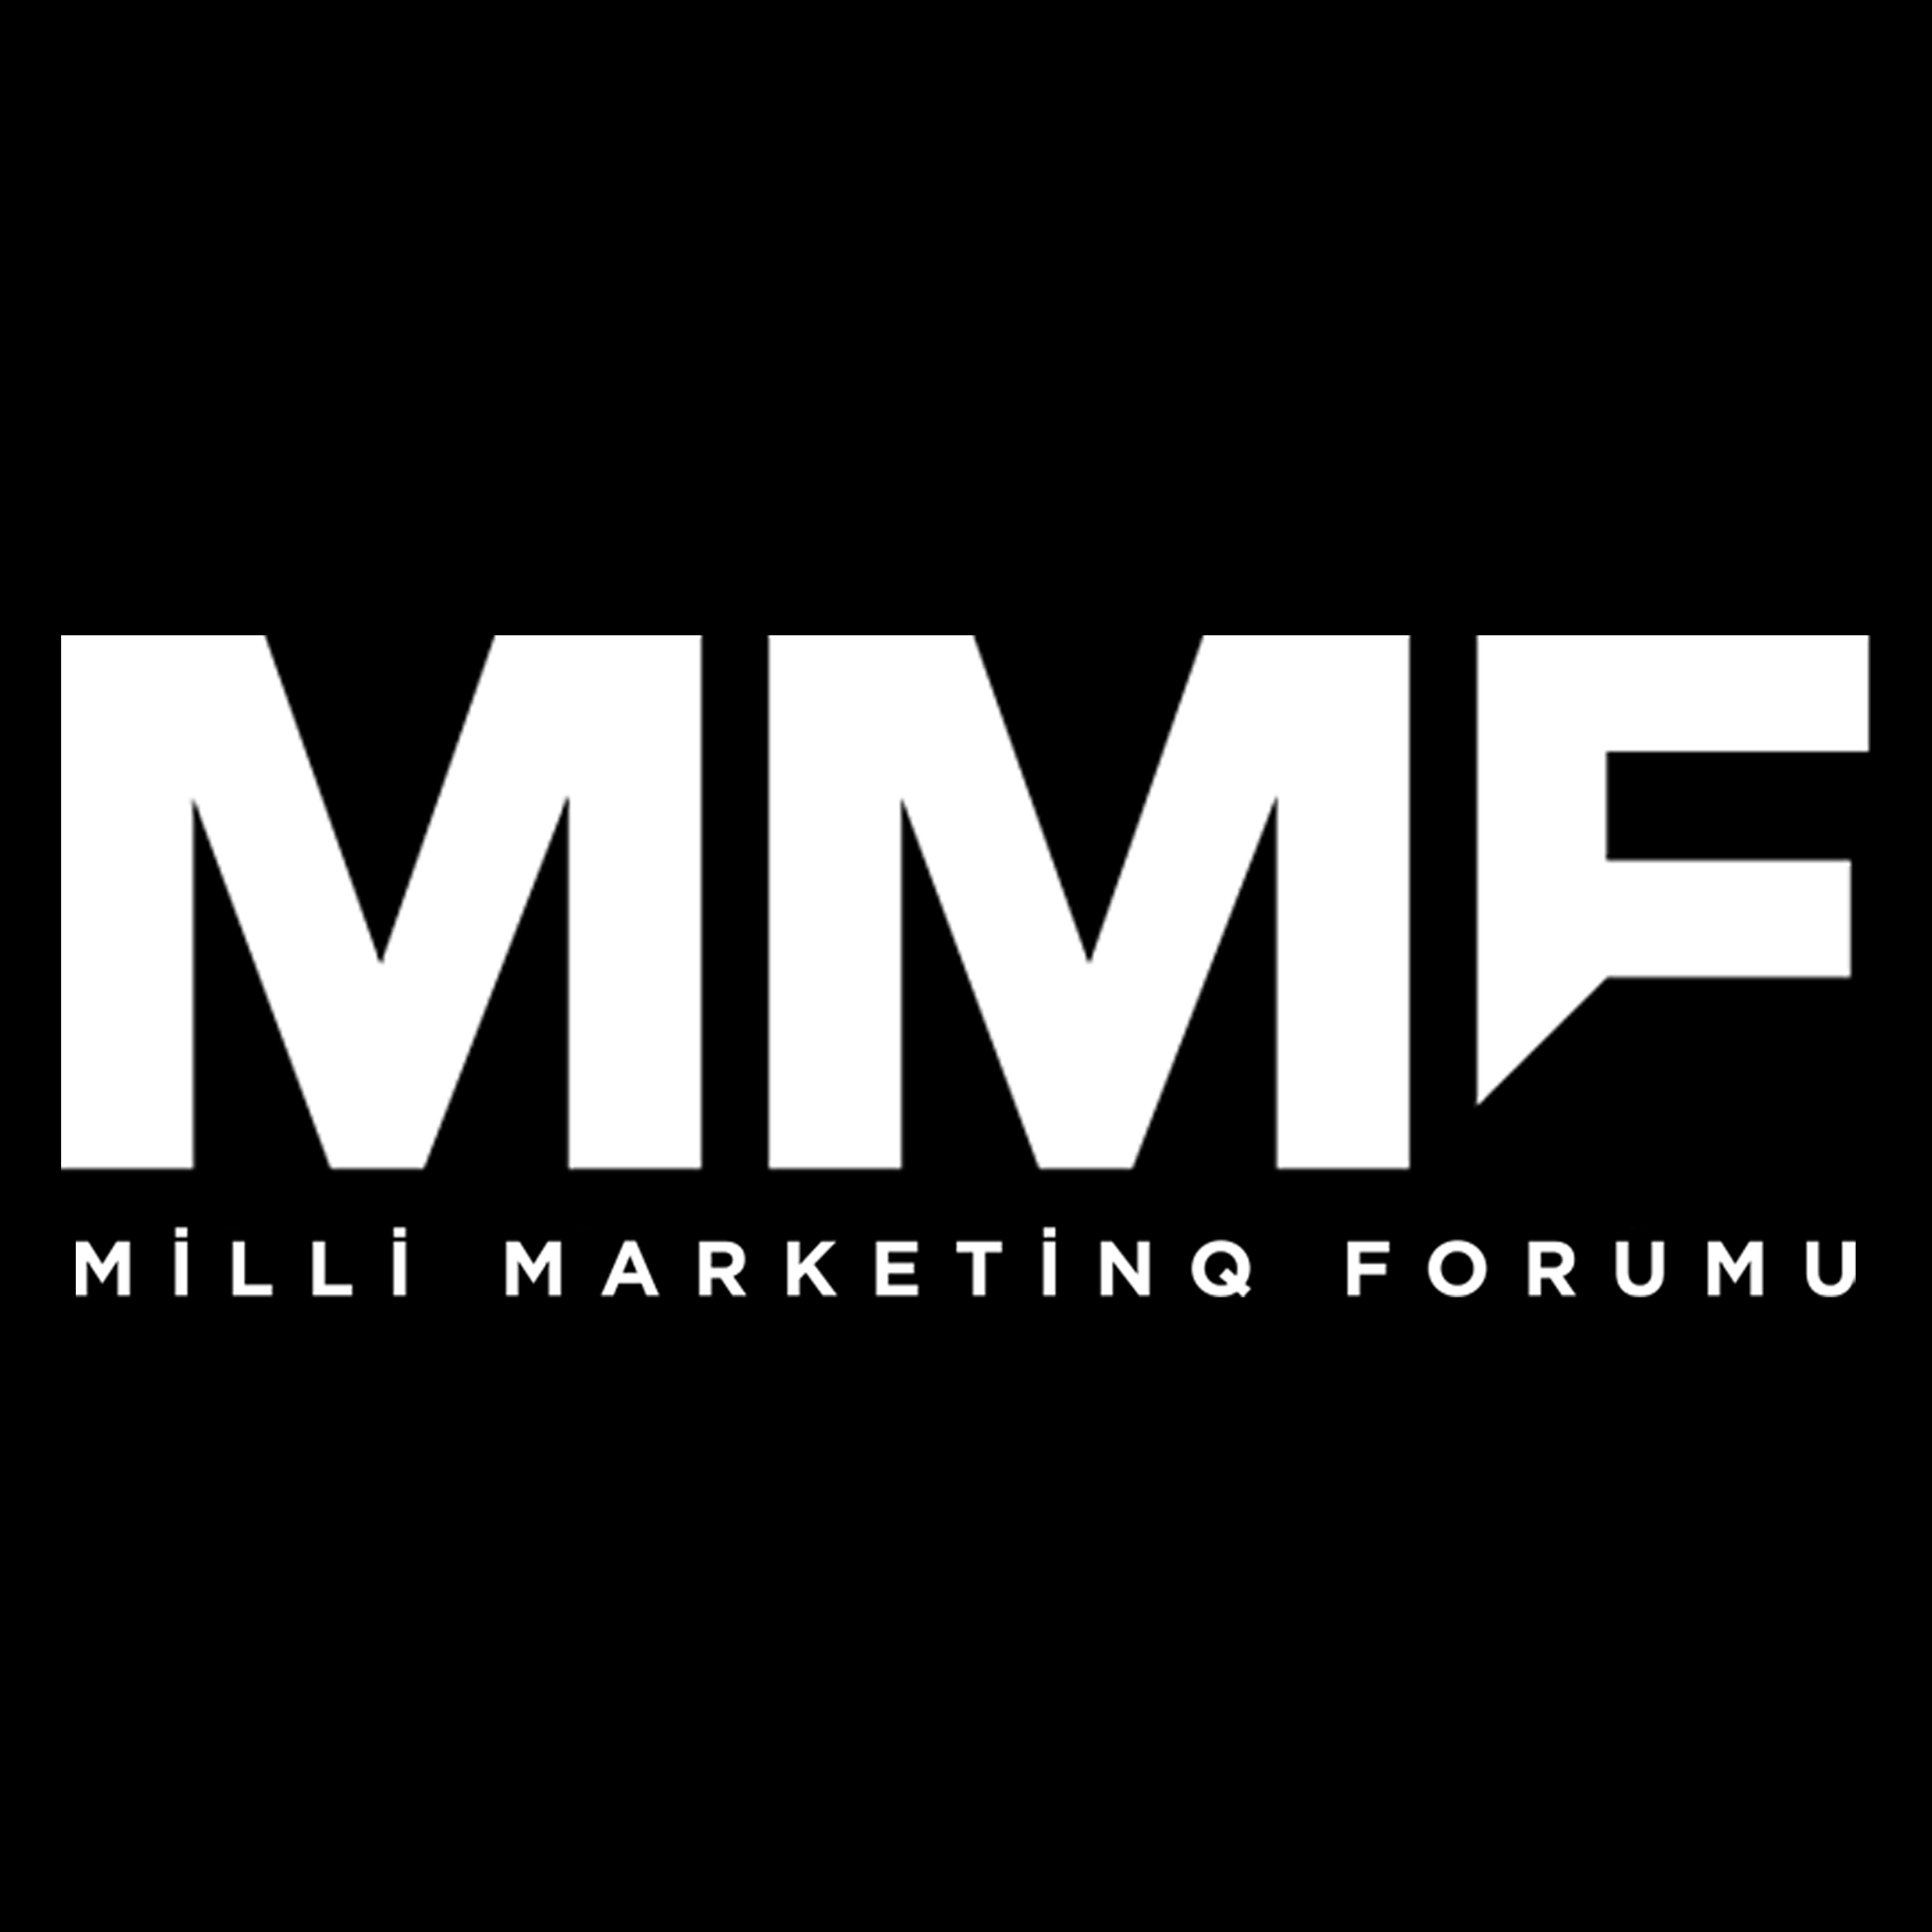 Milli Marketinq Forumu